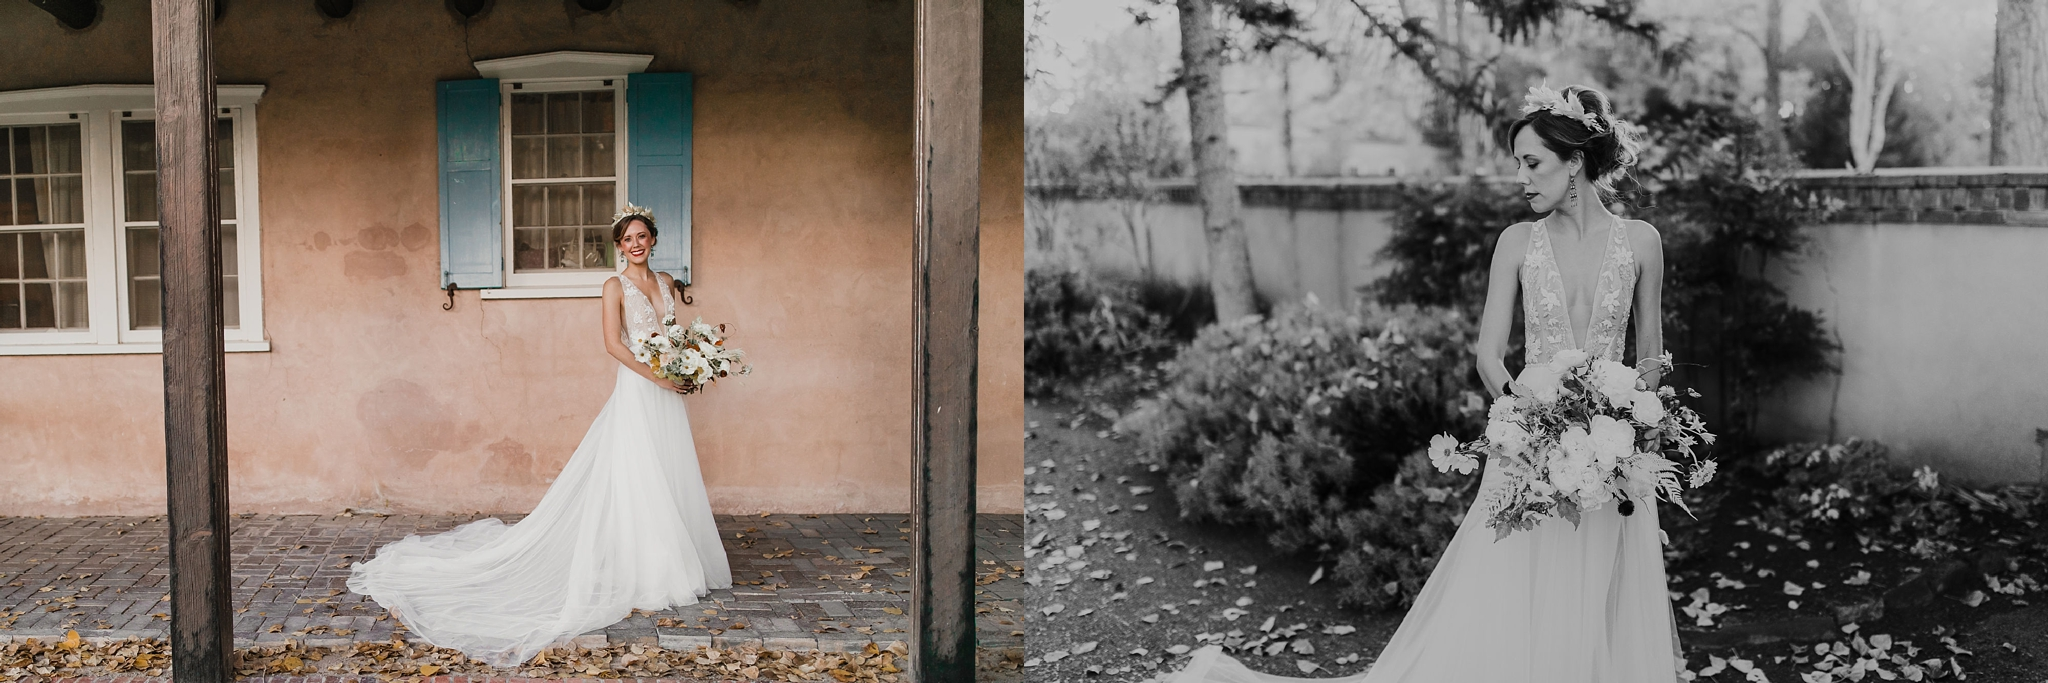 Alicia+lucia+photography+-+albuquerque+wedding+photographer+-+santa+fe+wedding+photography+-+new+mexico+wedding+photographer+-+new+mexico+wedding+-+albuquerque+wedding+-+rocky+mountain+bride+-+los+poblanos+wedding_0076.jpg